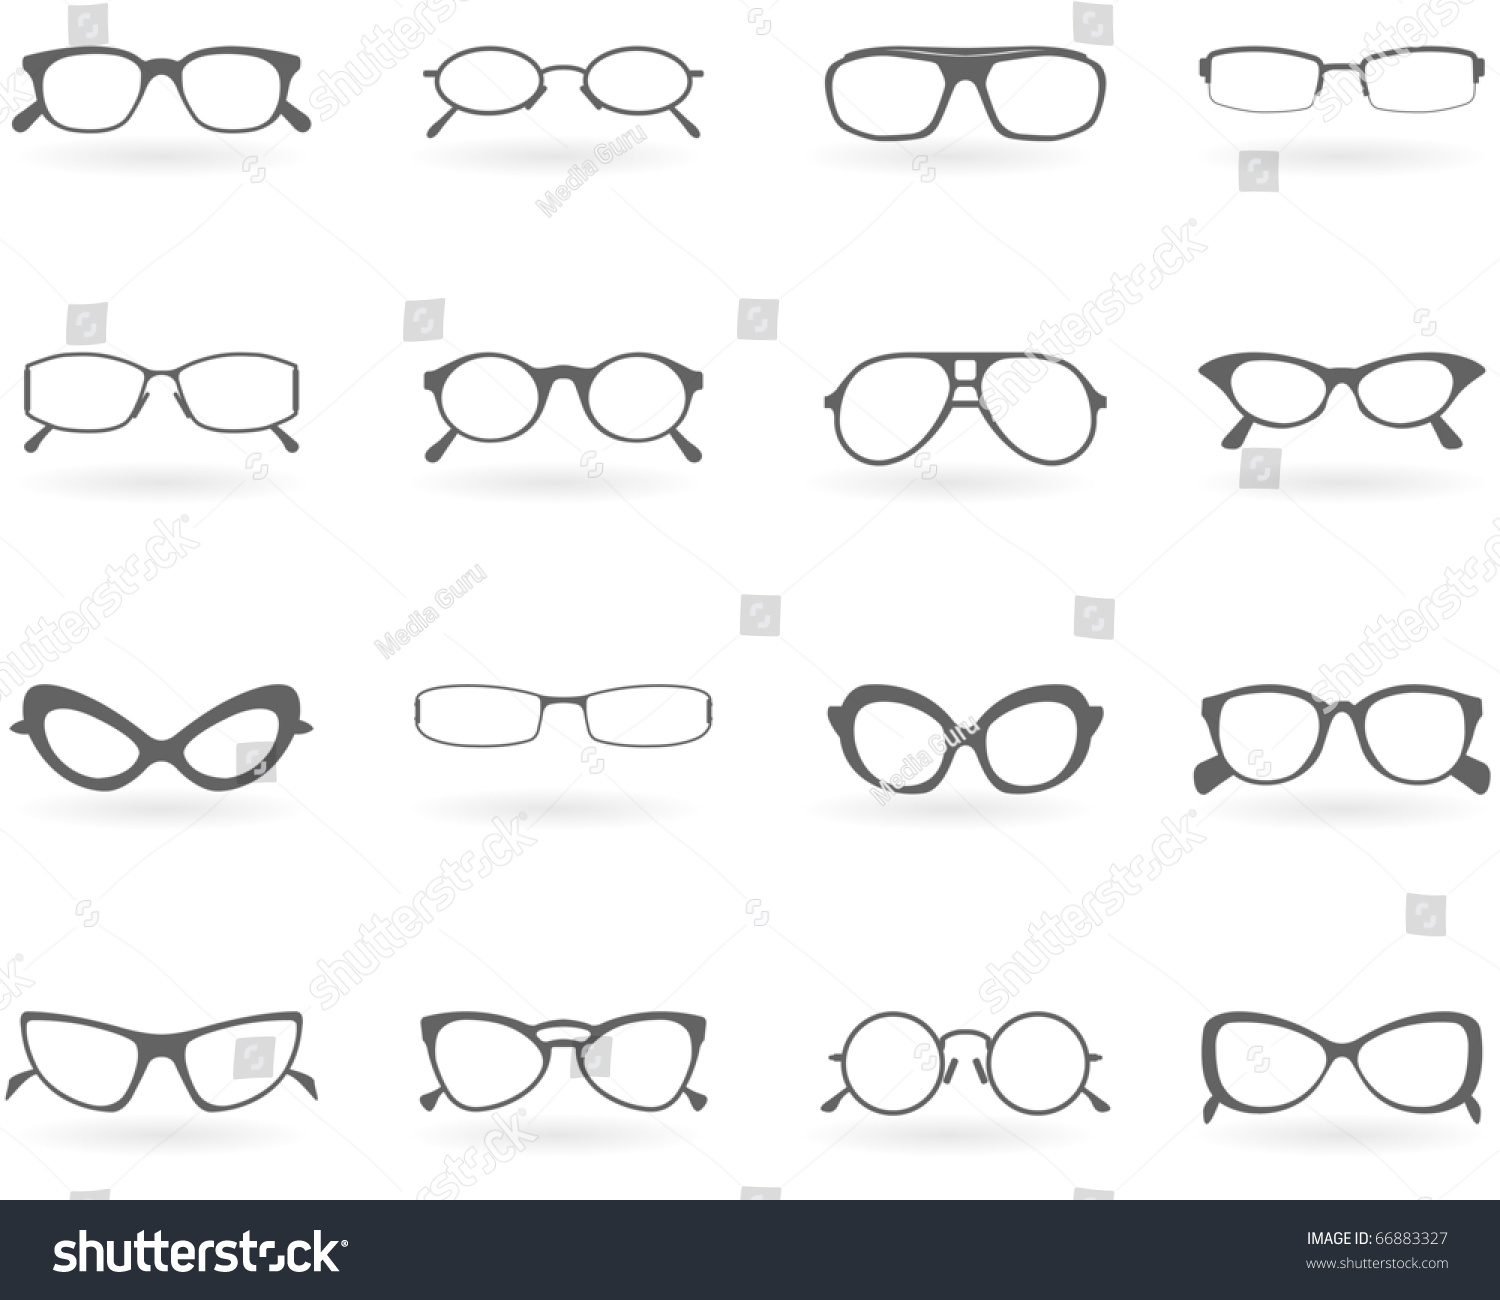 glasses styles  Glasses Different Styles Stock Vector 66883327 - Shutterstock